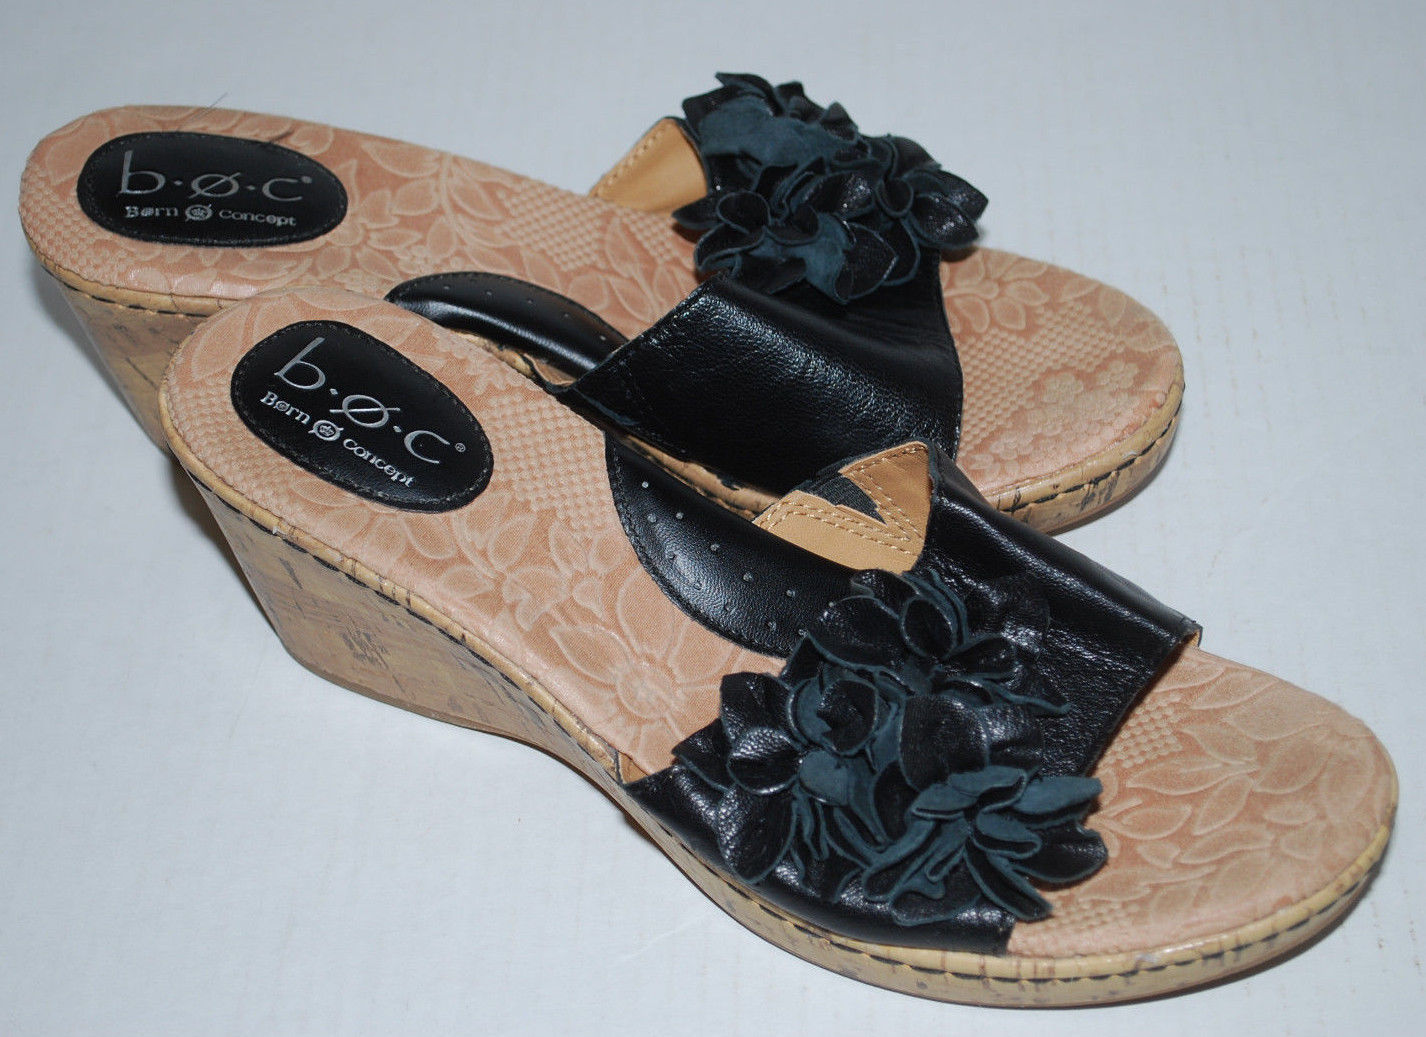 Born Shoes Womens 9 Black Applique Flowers Wedge Cork Heel Leather 40.5 b.o.c.